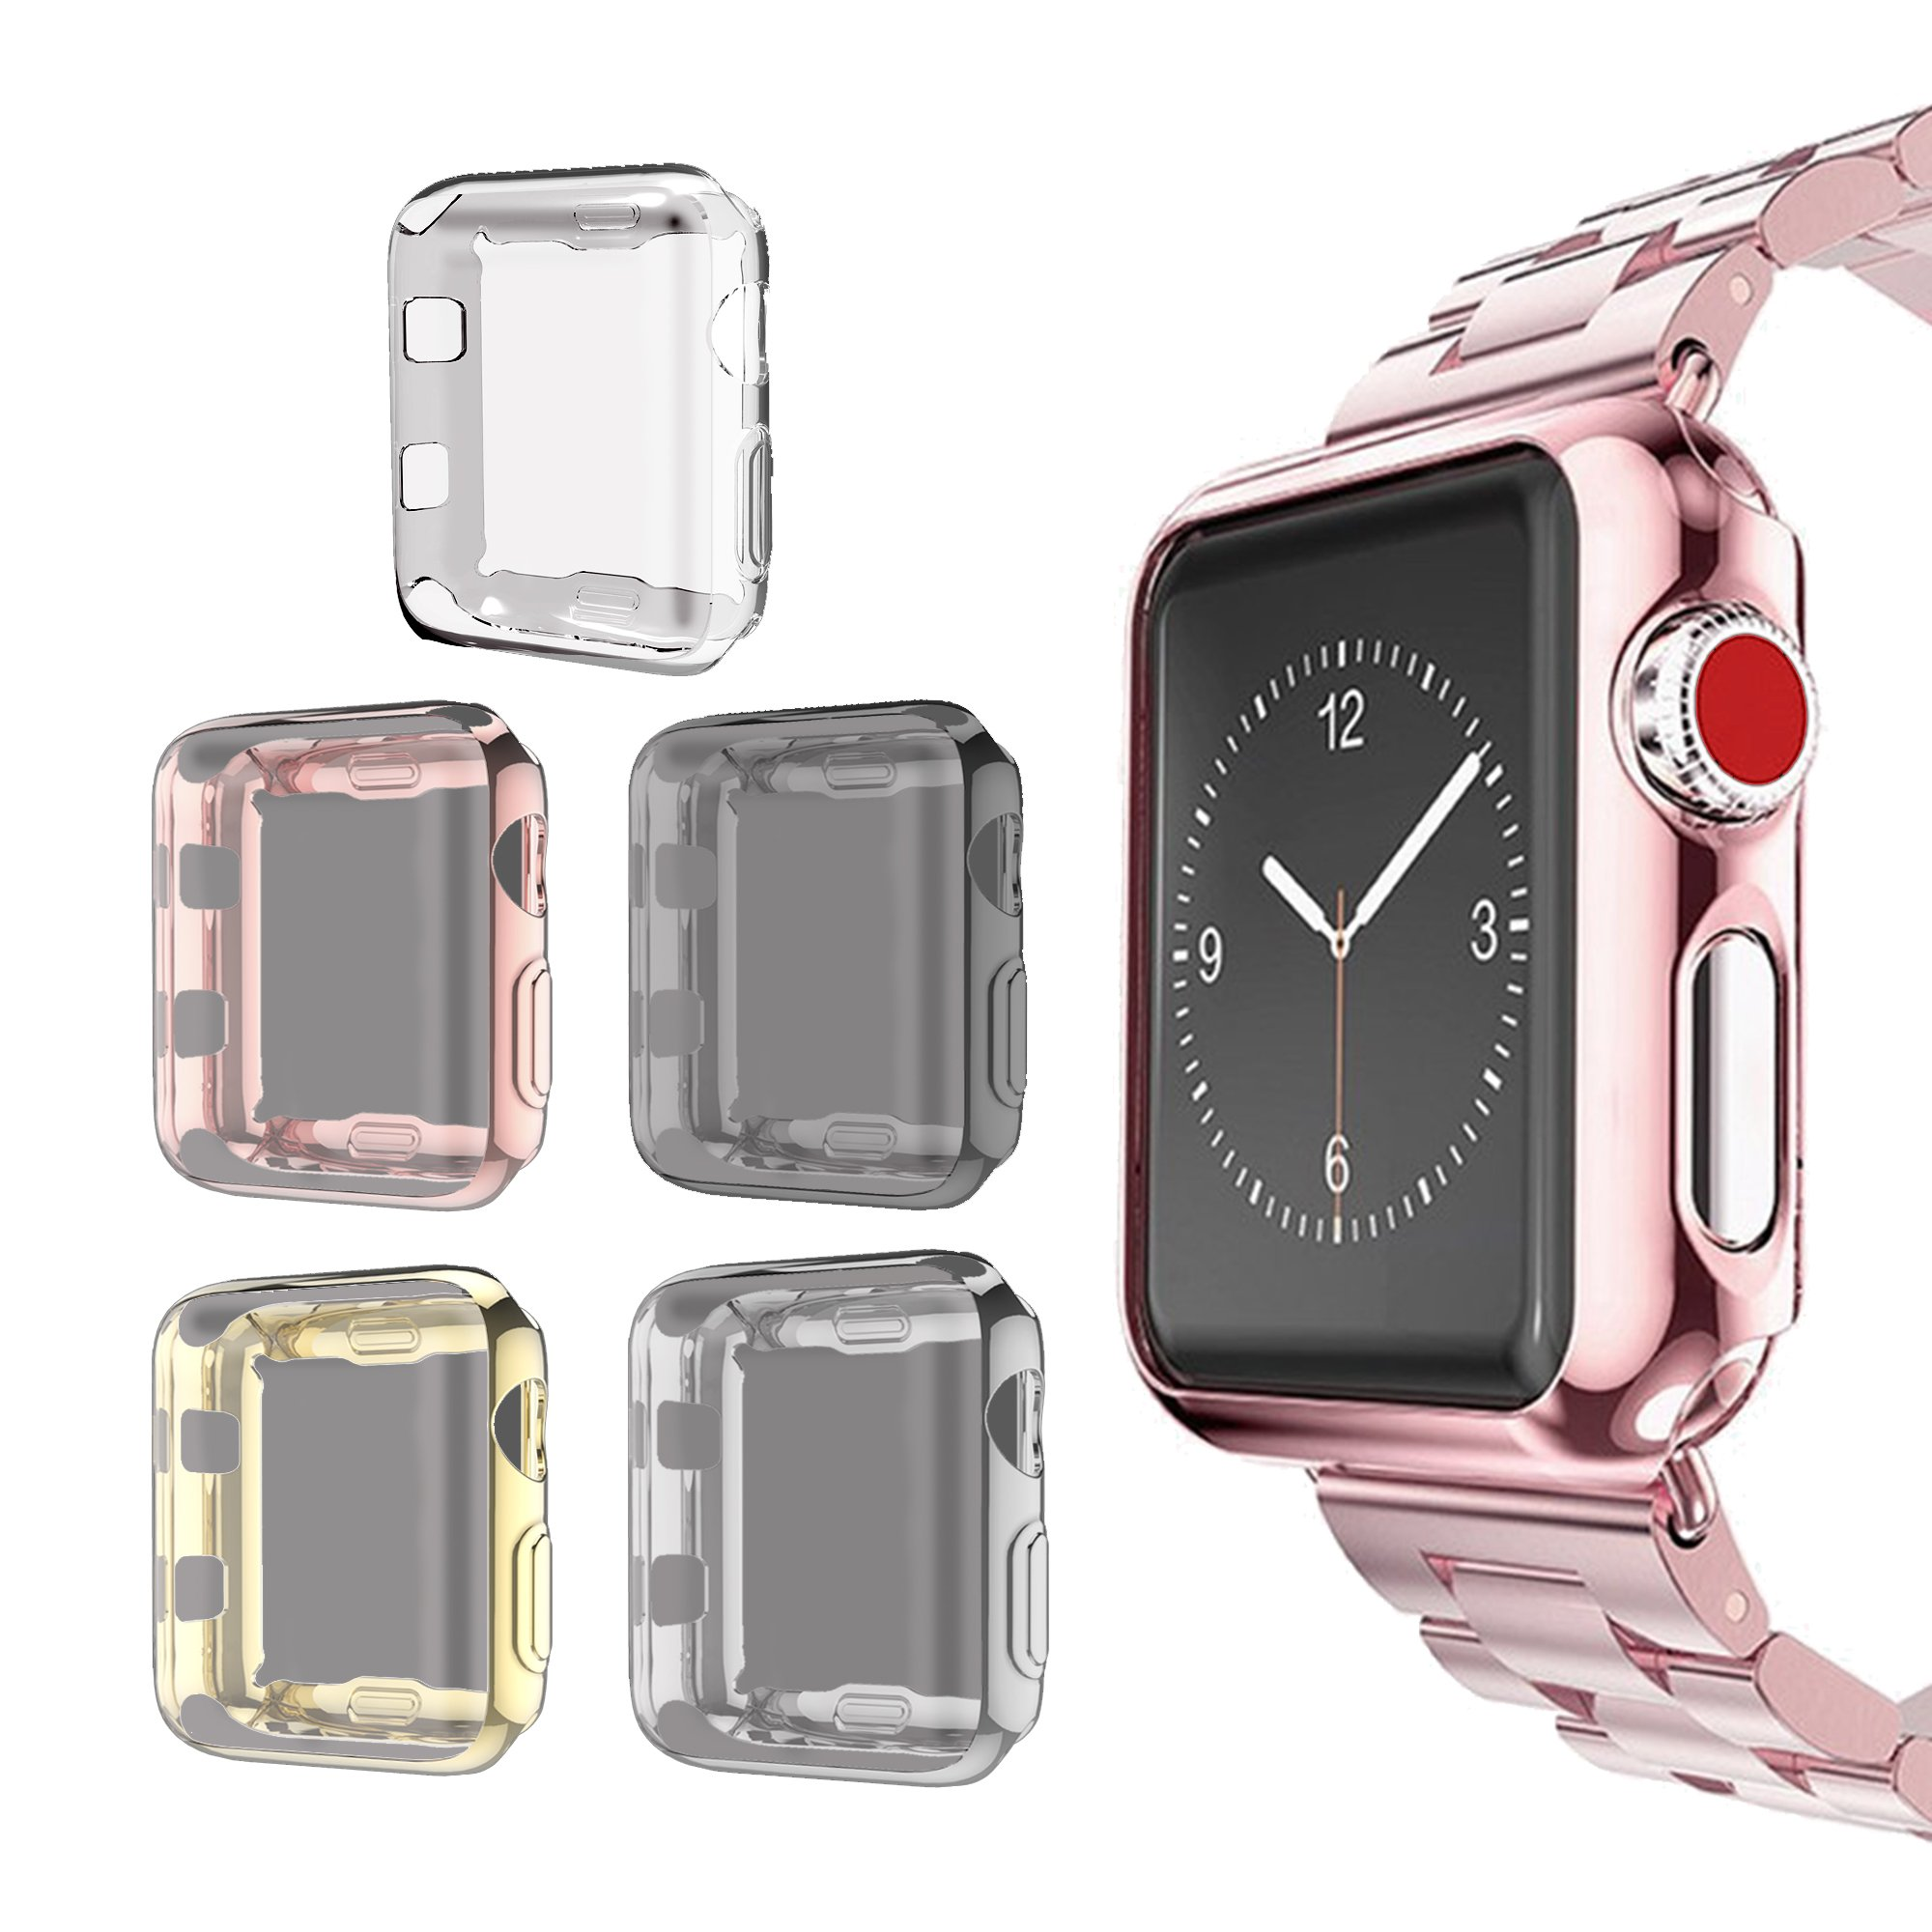 for Apple Watch 3 Case 38mm Screen Protector, SIRUIBO Soft Plated TPU Slim All-around Protective Bumper Cover for Apple iWatch Series 3 Series 2 Series 1 Edition Sport Nike+ (5 Pack)